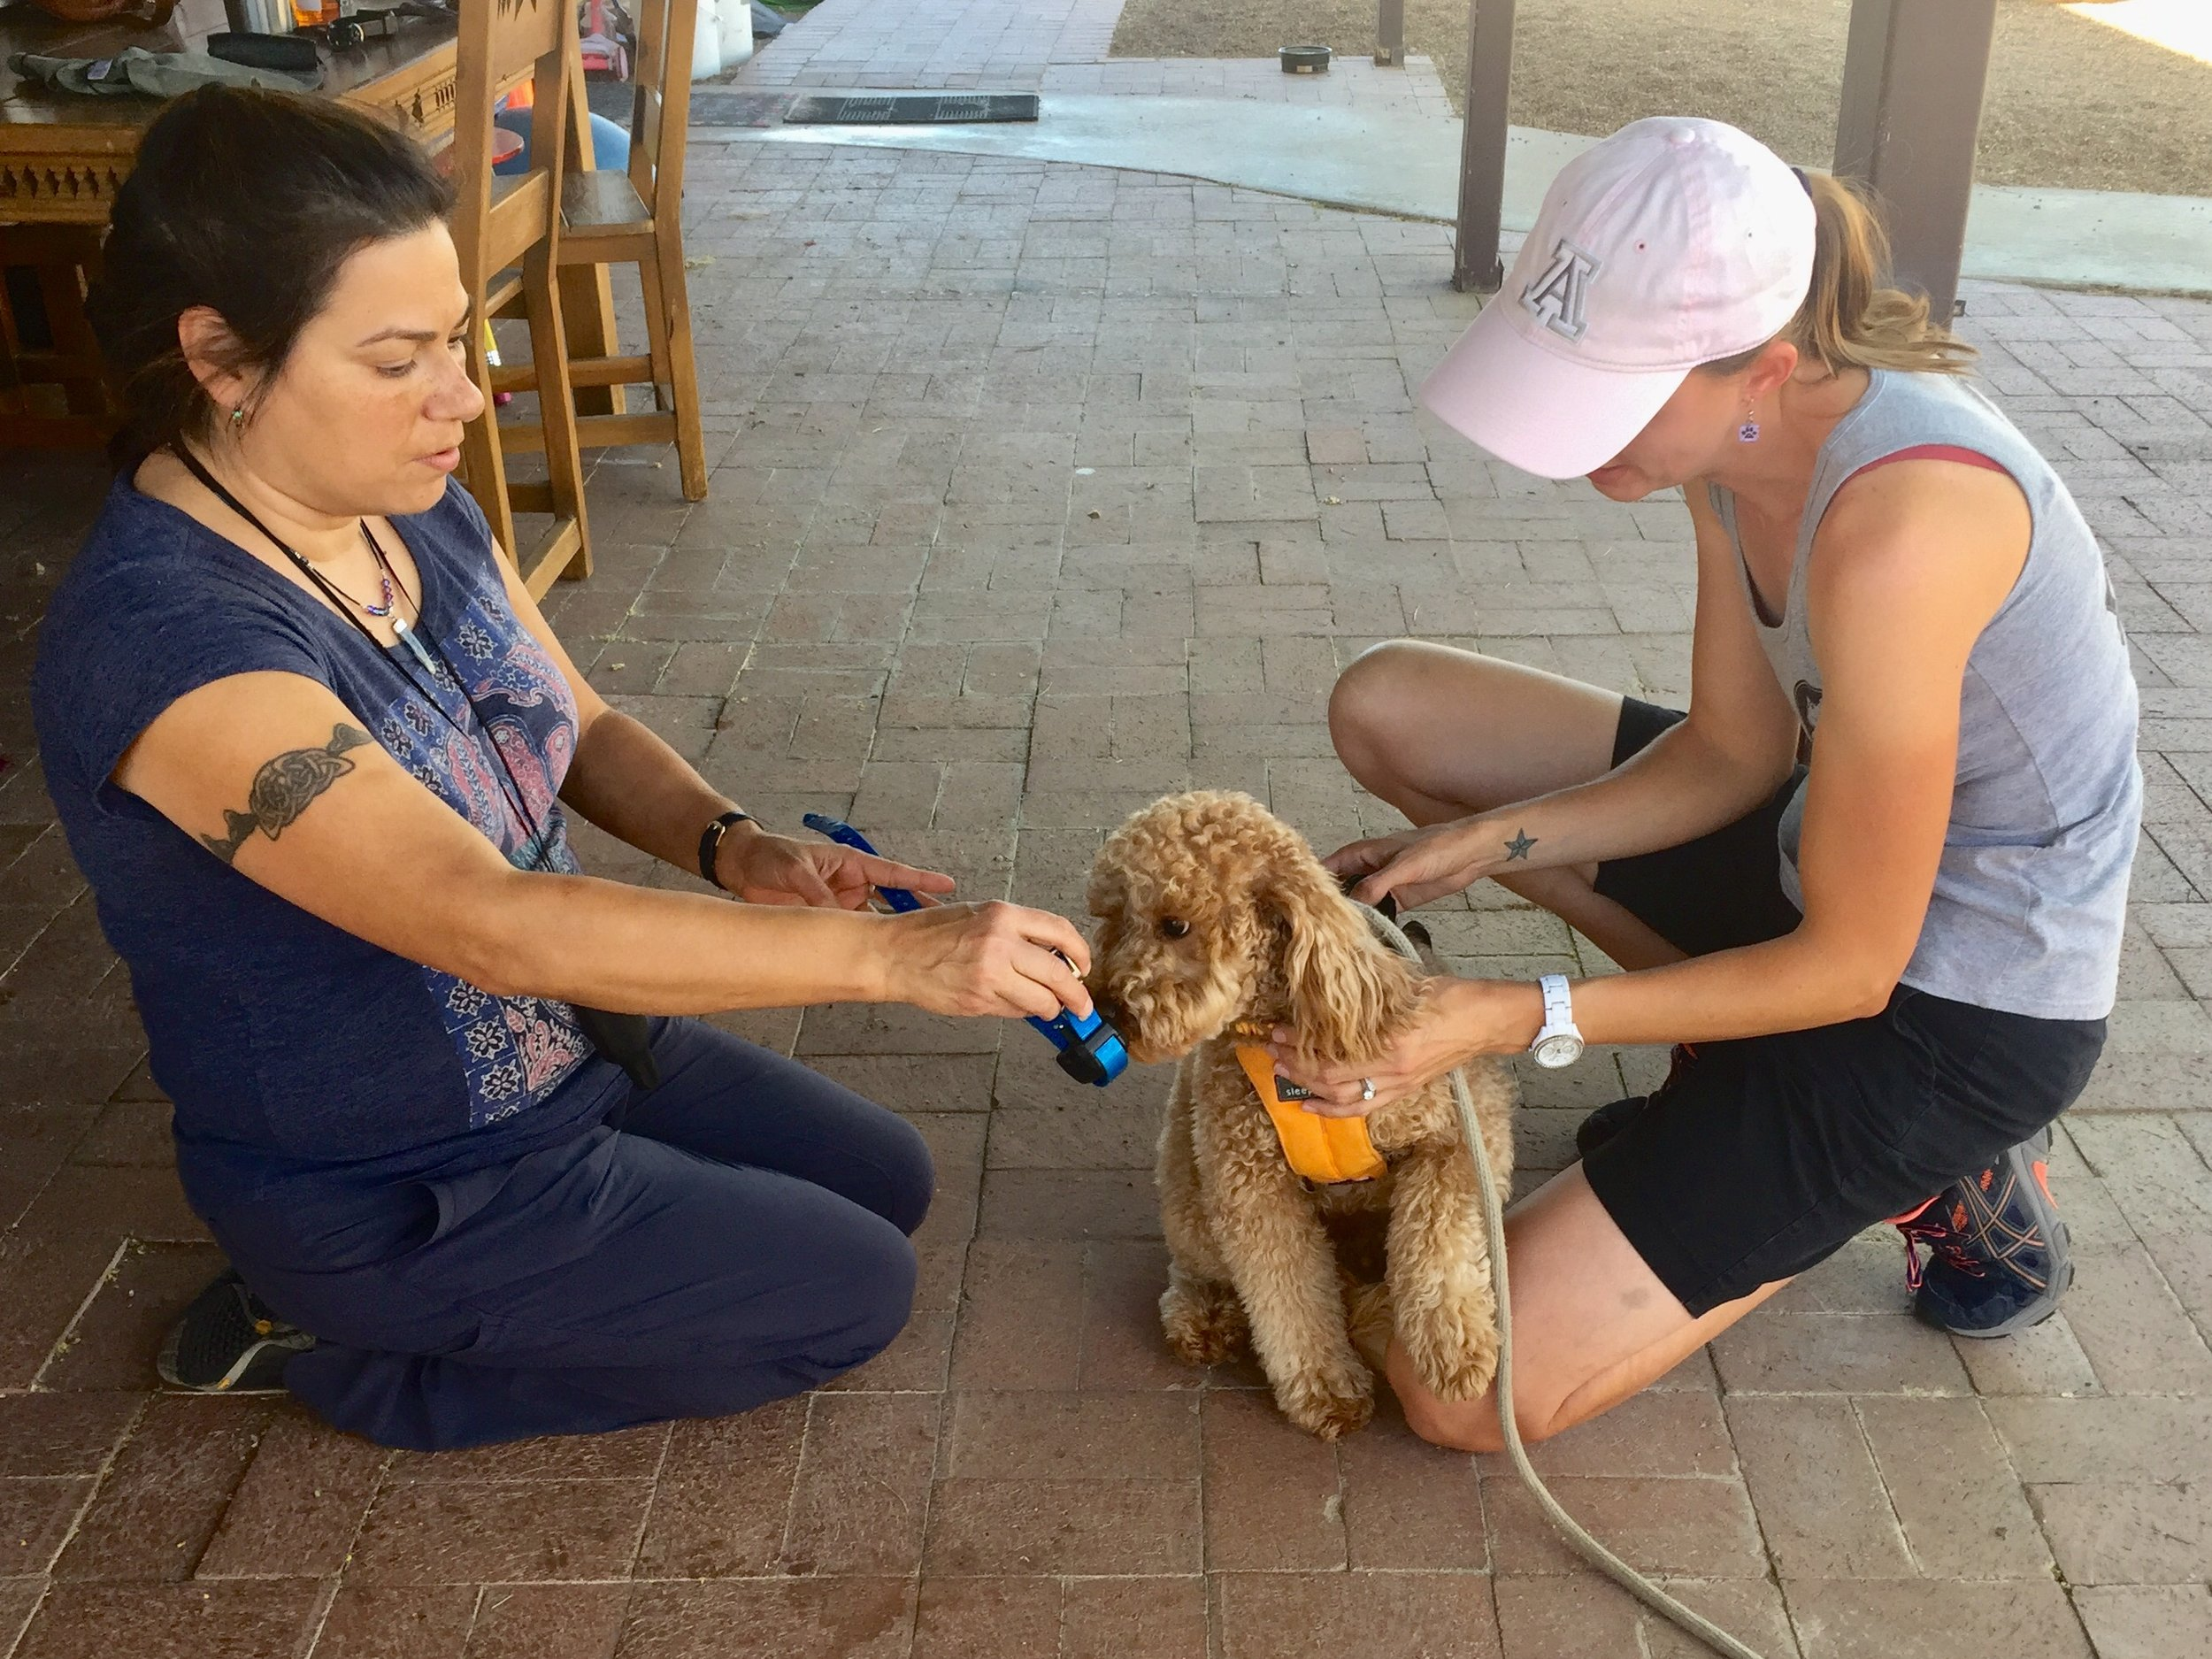 Getting ready to begin Rattlesnake Avoidance Training. Lizzie sniffs at the electronic collar that Dr. Vanya Moreno of Animal Magnetism holds out to her while Crystal Blaker of Ruff House Dog Training & Modification removes her regular collar.